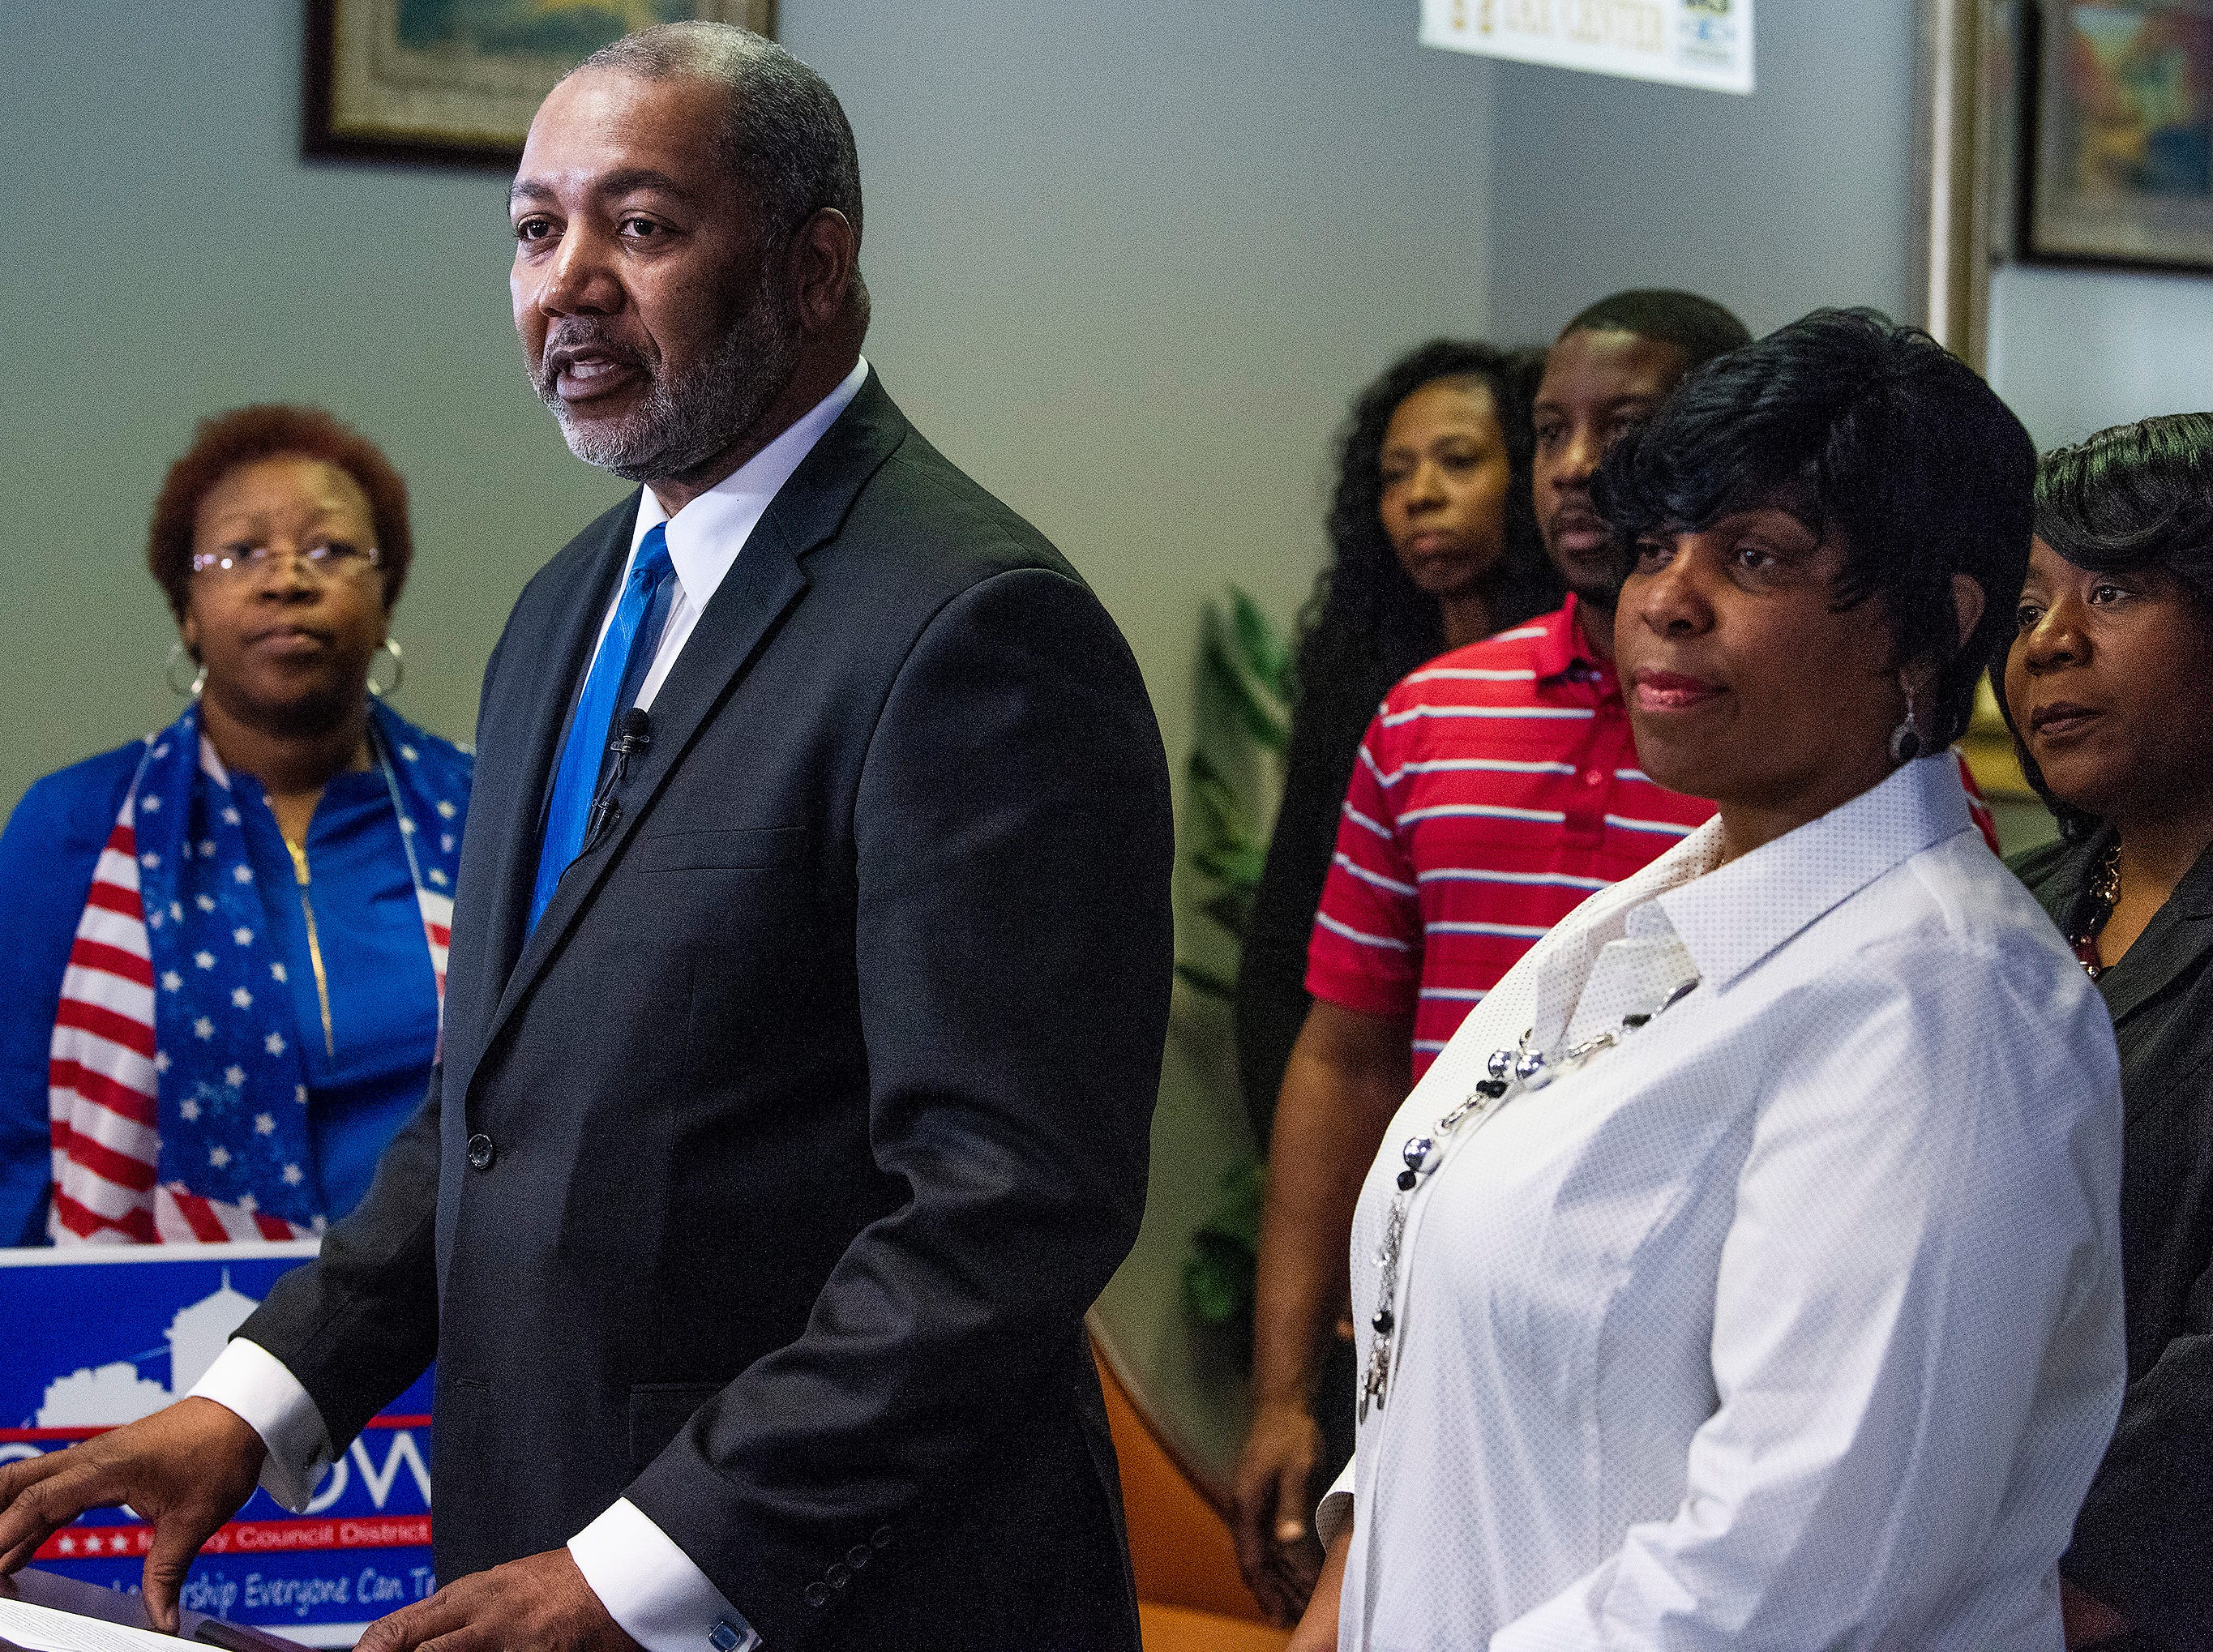 Jon Dow, backed by supporters, announces that he is running to take back his city council seat in Montgomery, Ala., on Thursday February 7, 2019.